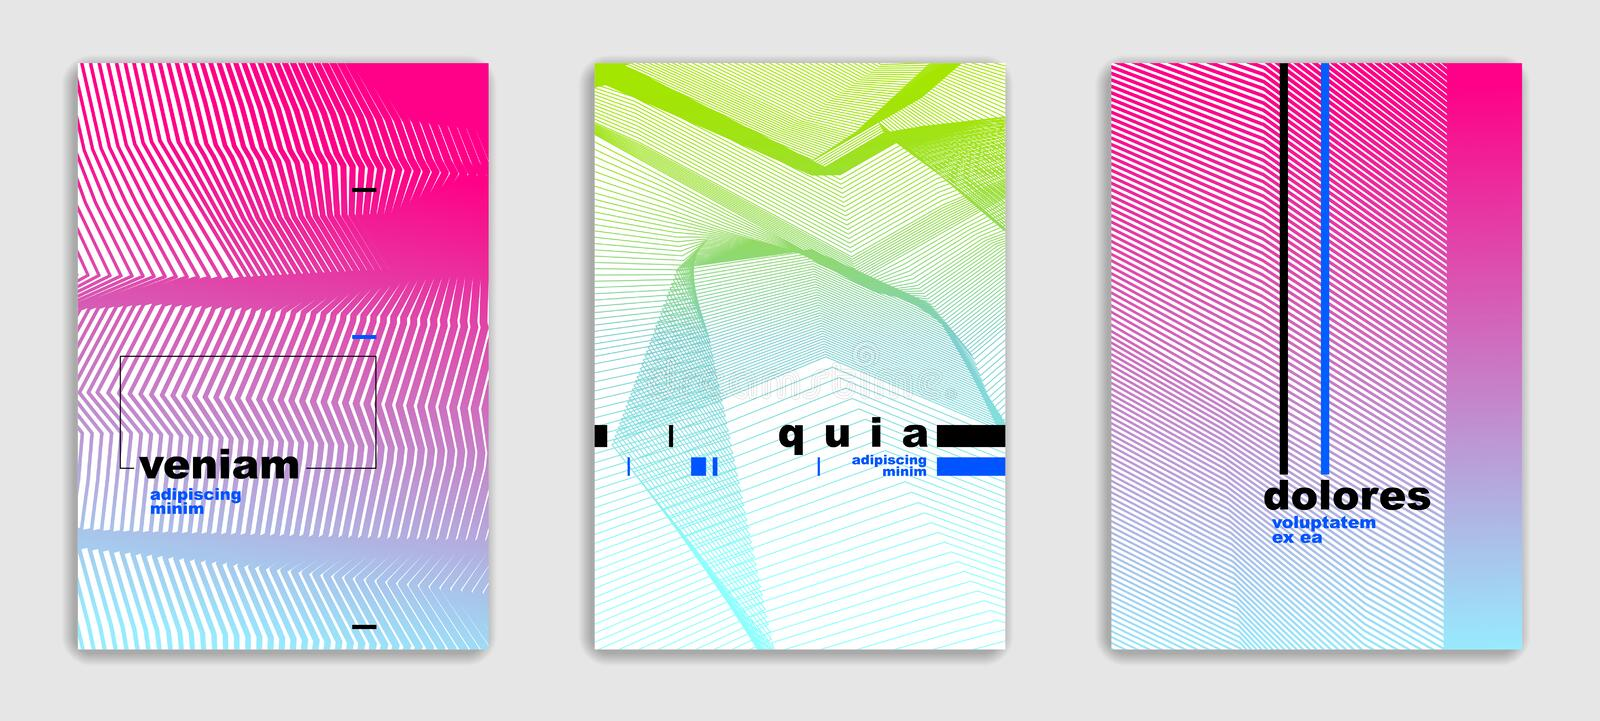 Linear vector minimal trendy brochures set design, cover templates, geometric halftone gradient. For stock illustration